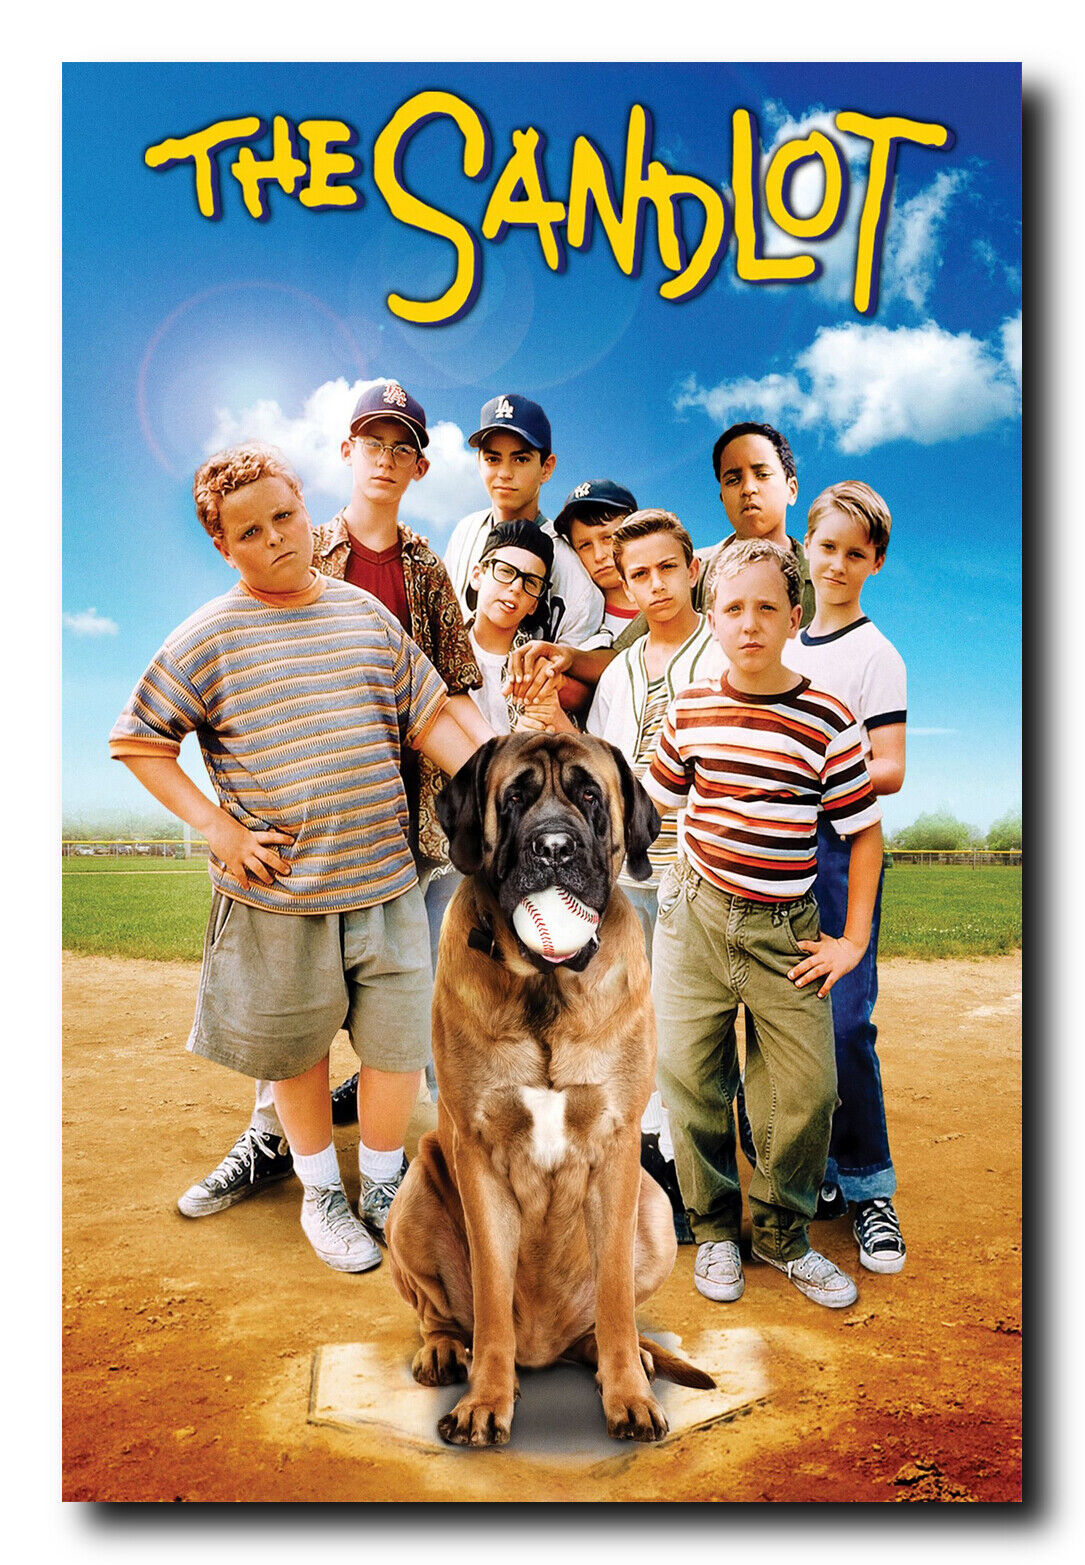 "The Sandlot Glossy Finish Movie Poster - 24"" x 36"" Ready To"